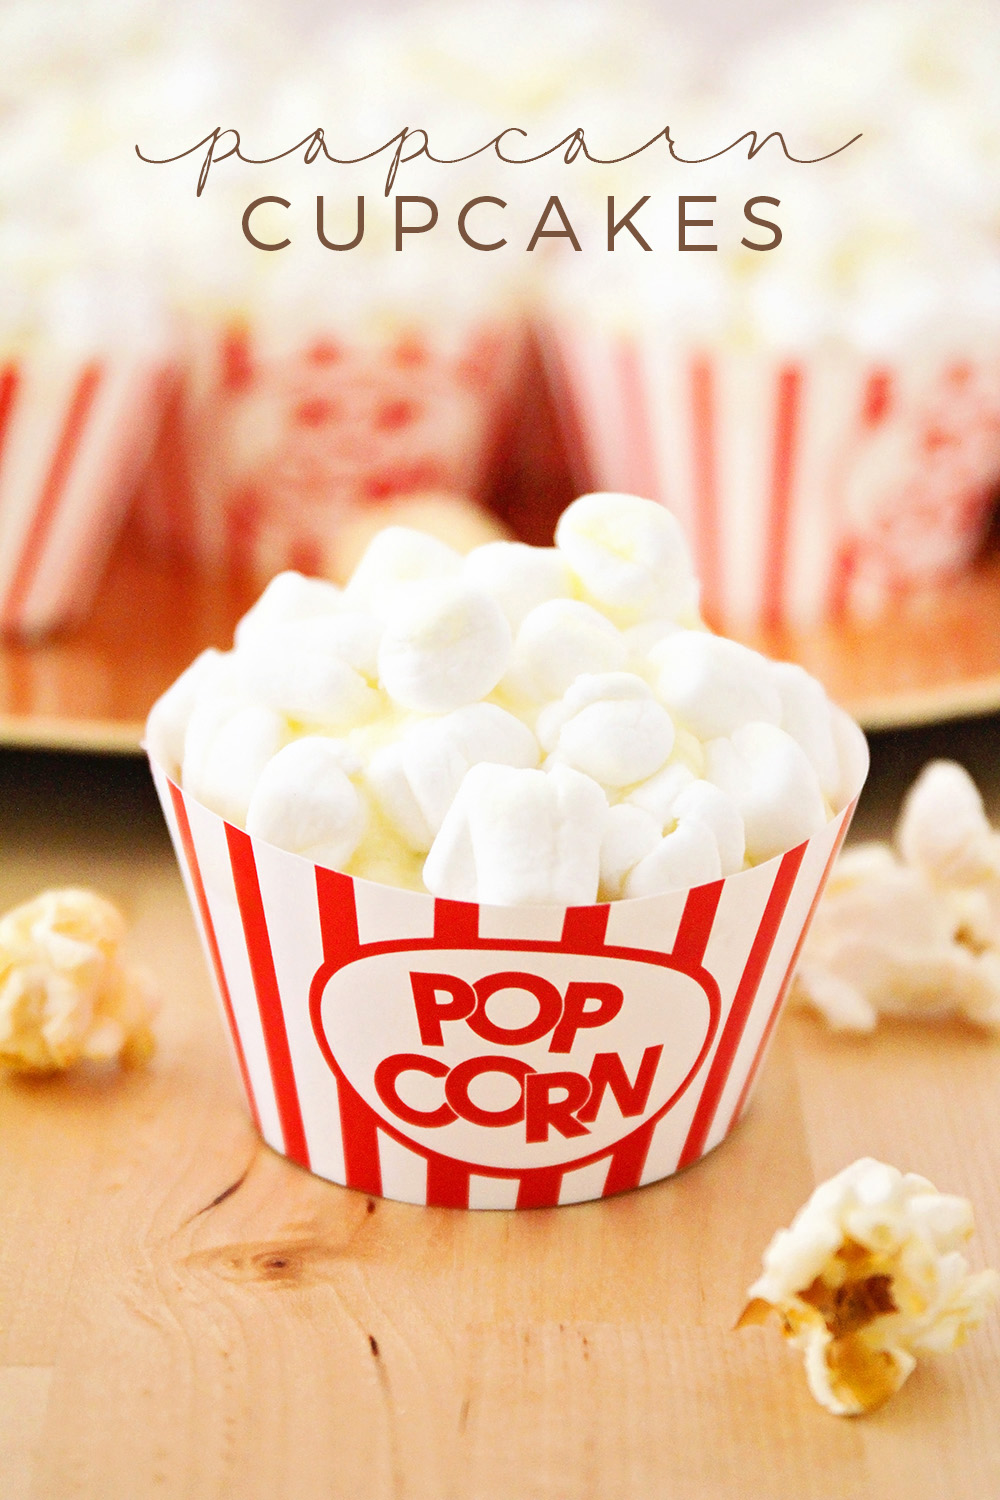 These popcorn cupcakes are so adorable and fun, and so easy to make!